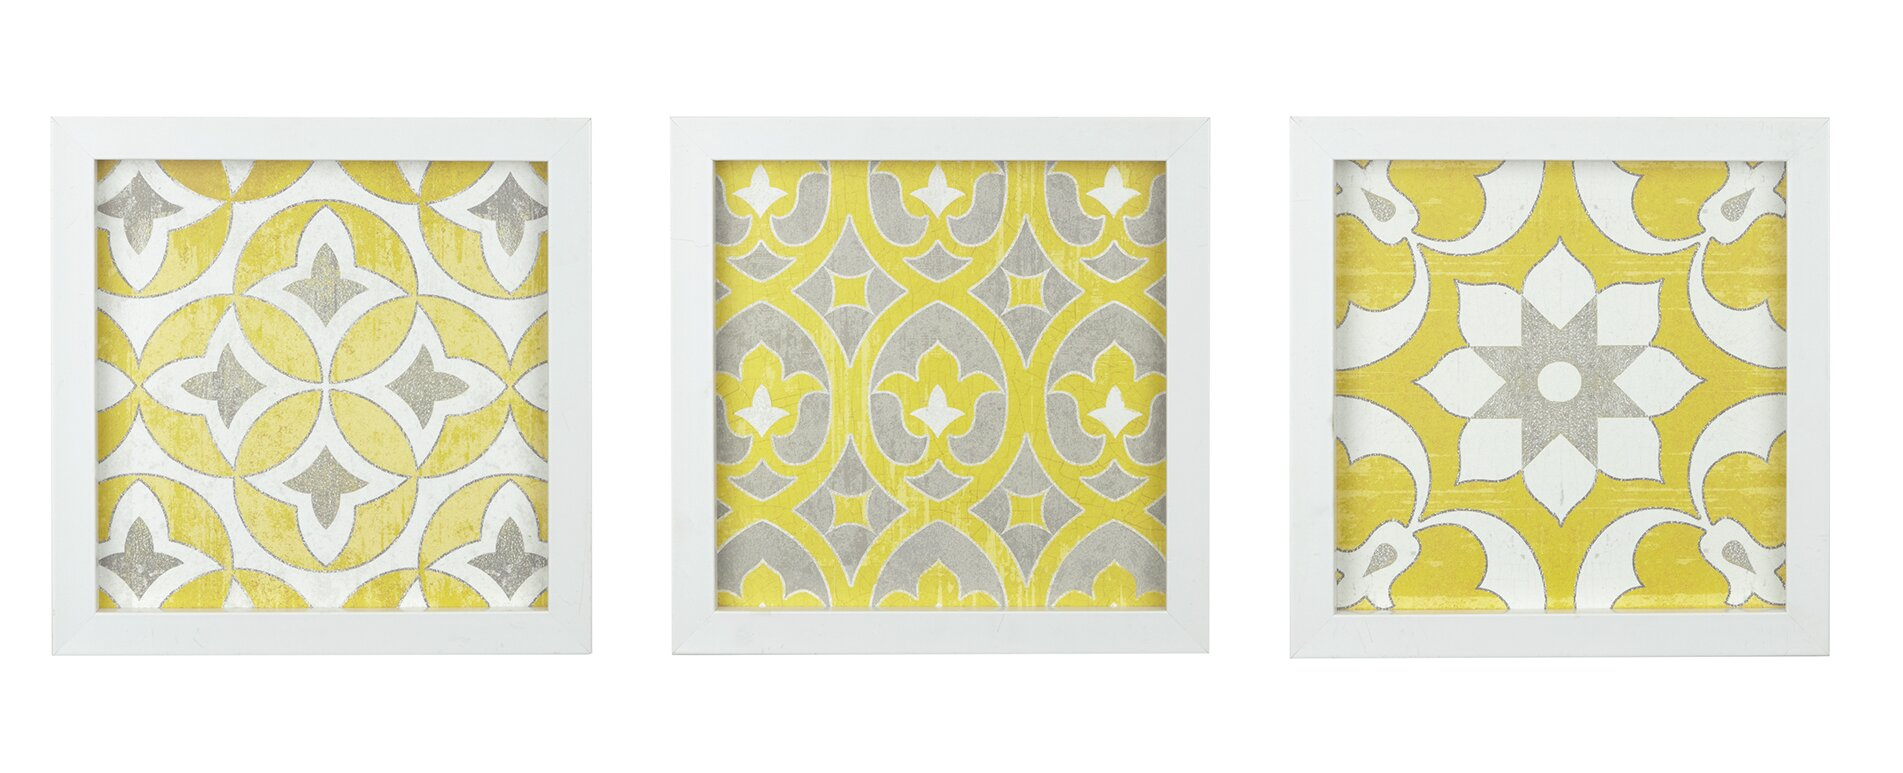 Tuscan Tiles 3 Piece Framed Graphic Art Print Set on Wood & Reviews ...